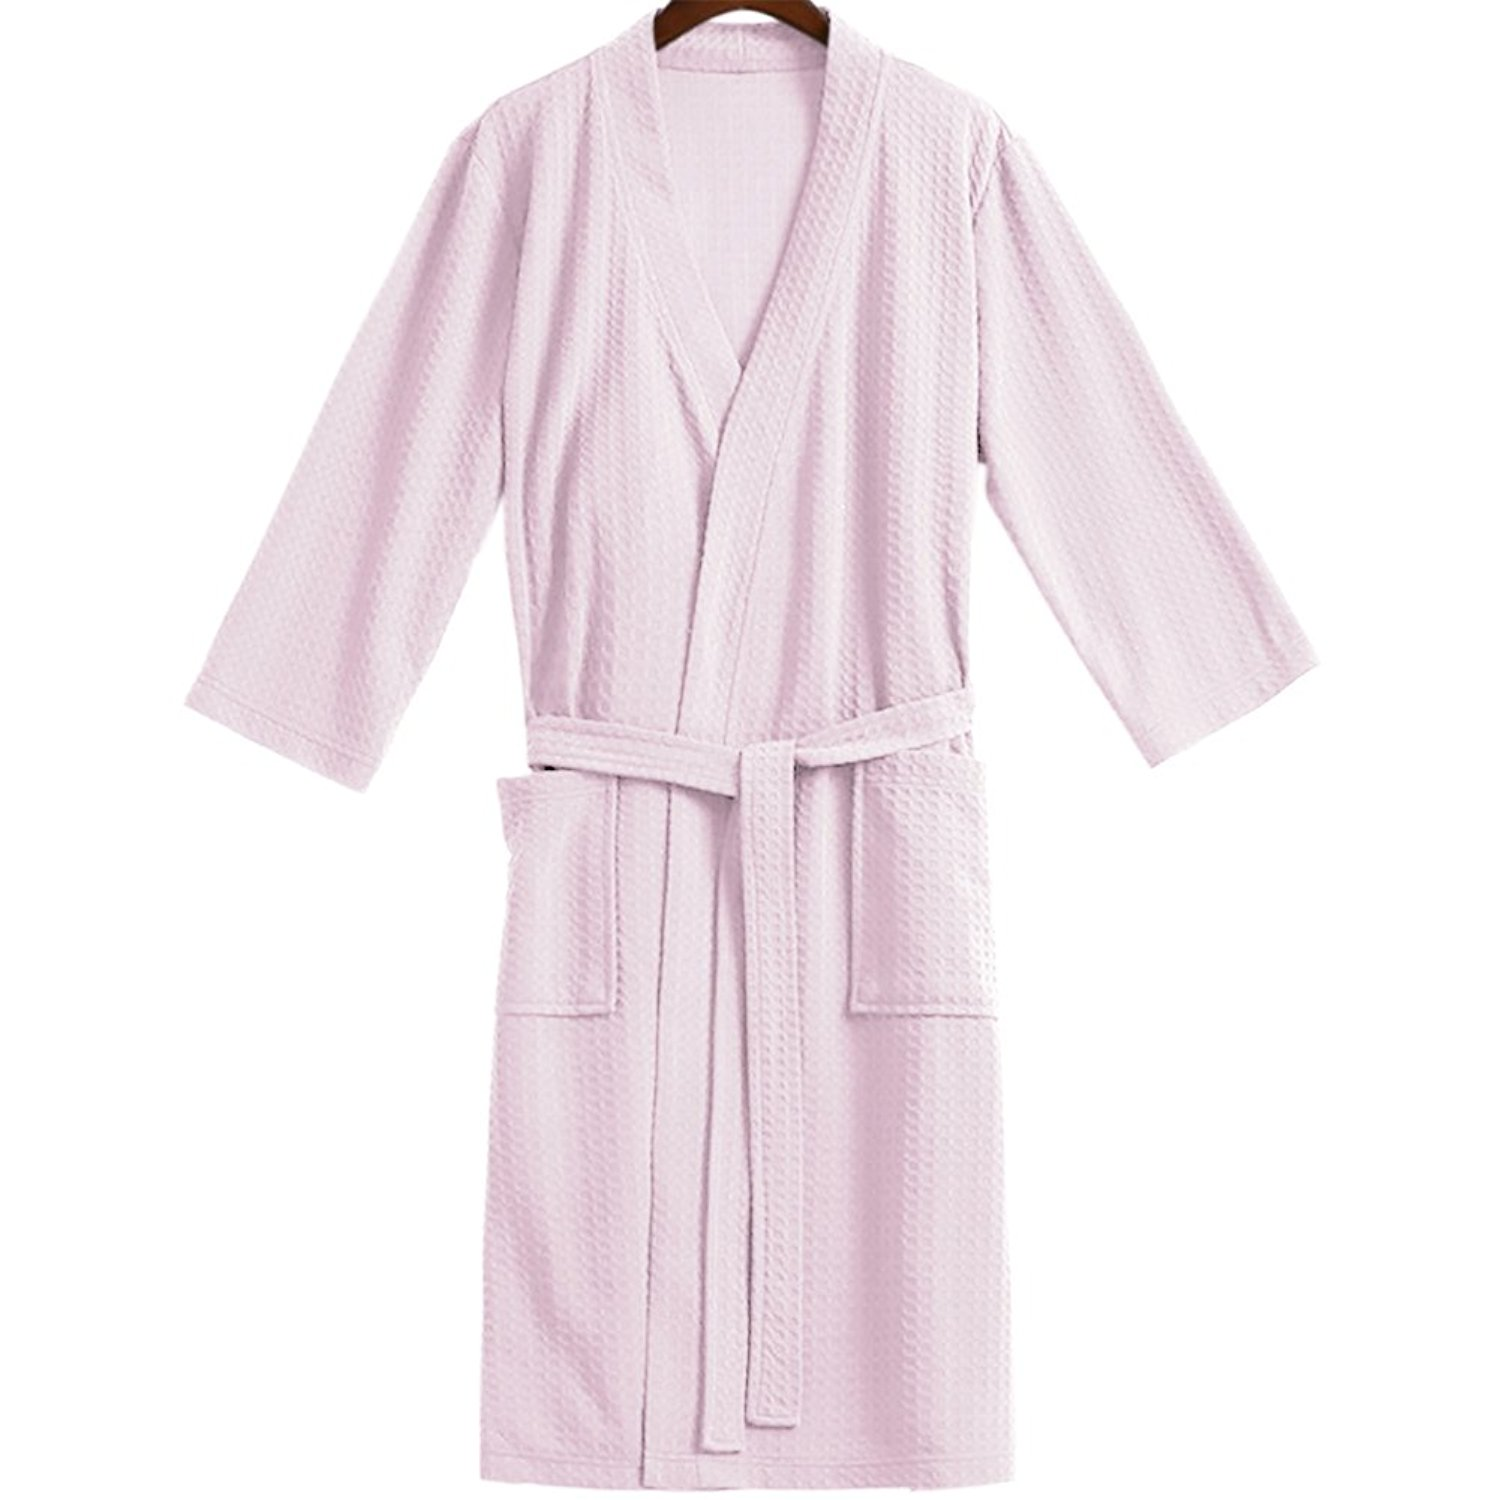 0eb5c1de95 Get Quotations · Opromo Adults Unisex Kimono Waffle Hotel Bathrobe Spa Robes  for Men and Women